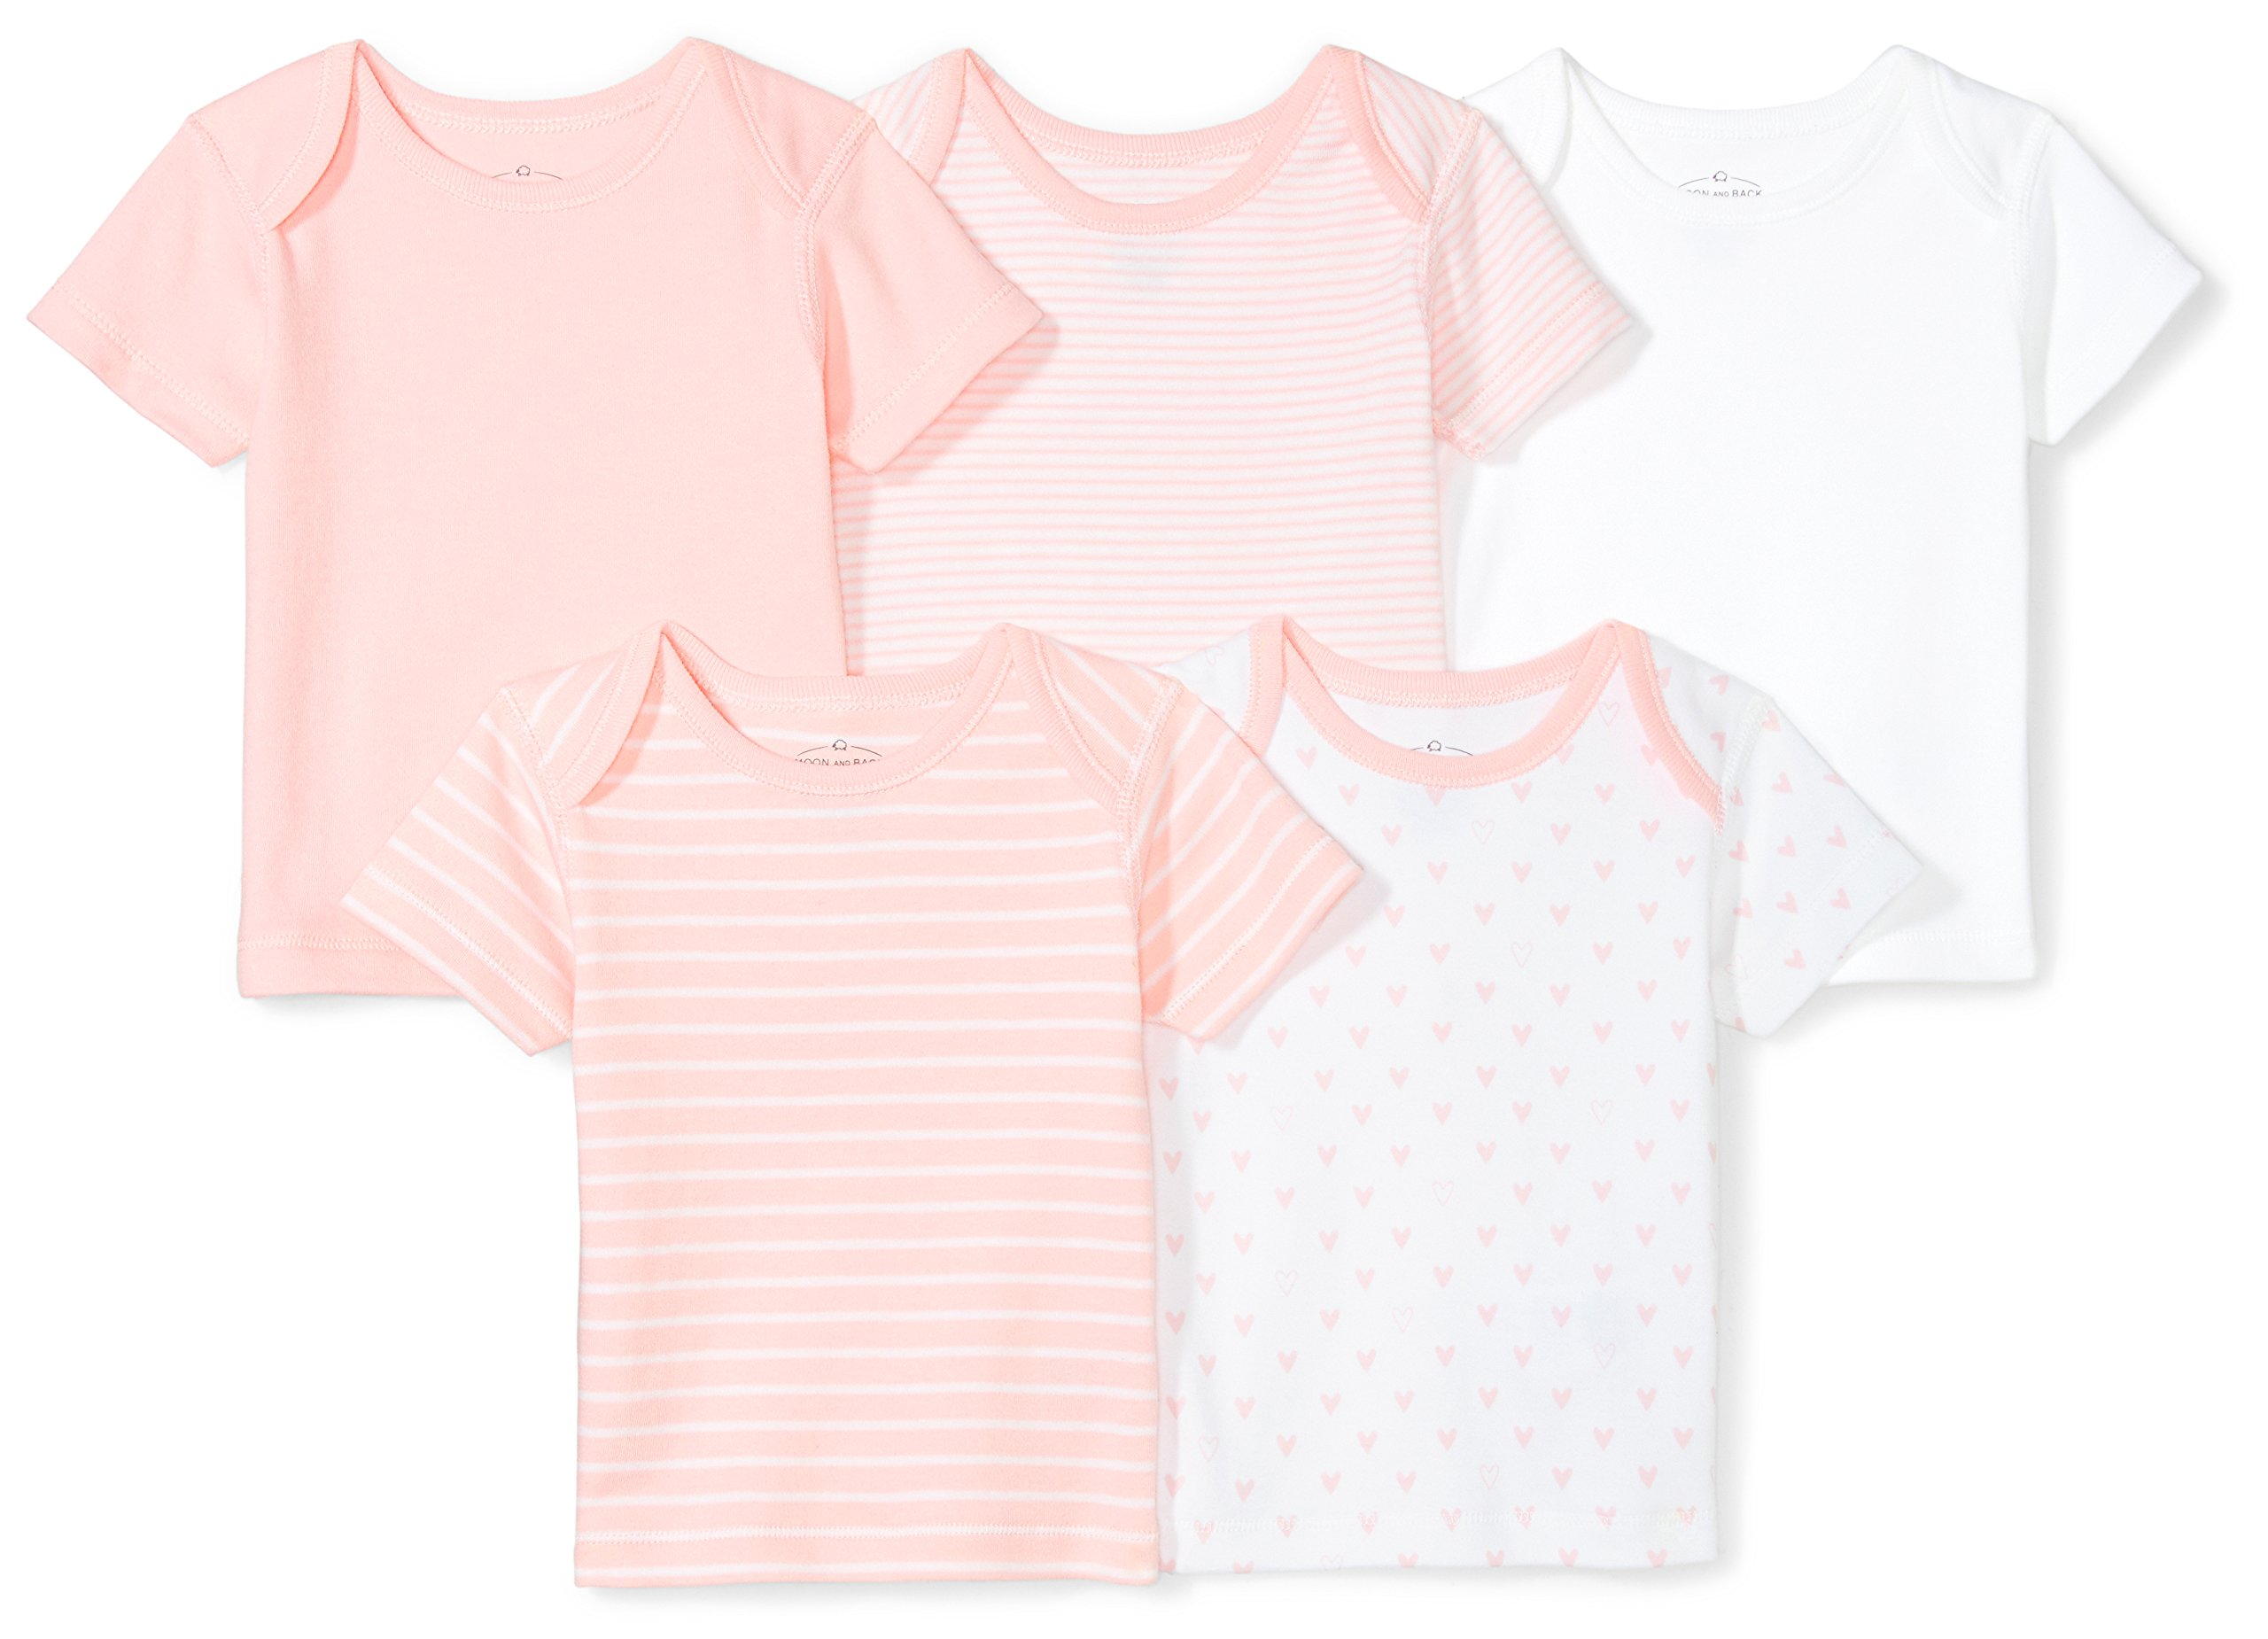 Moon and Back Baby Set of 5 Organic Lap-Neck Crew Short-Sleeve Tee Shirts, Pink Blush, 18 Months by Moon and Back